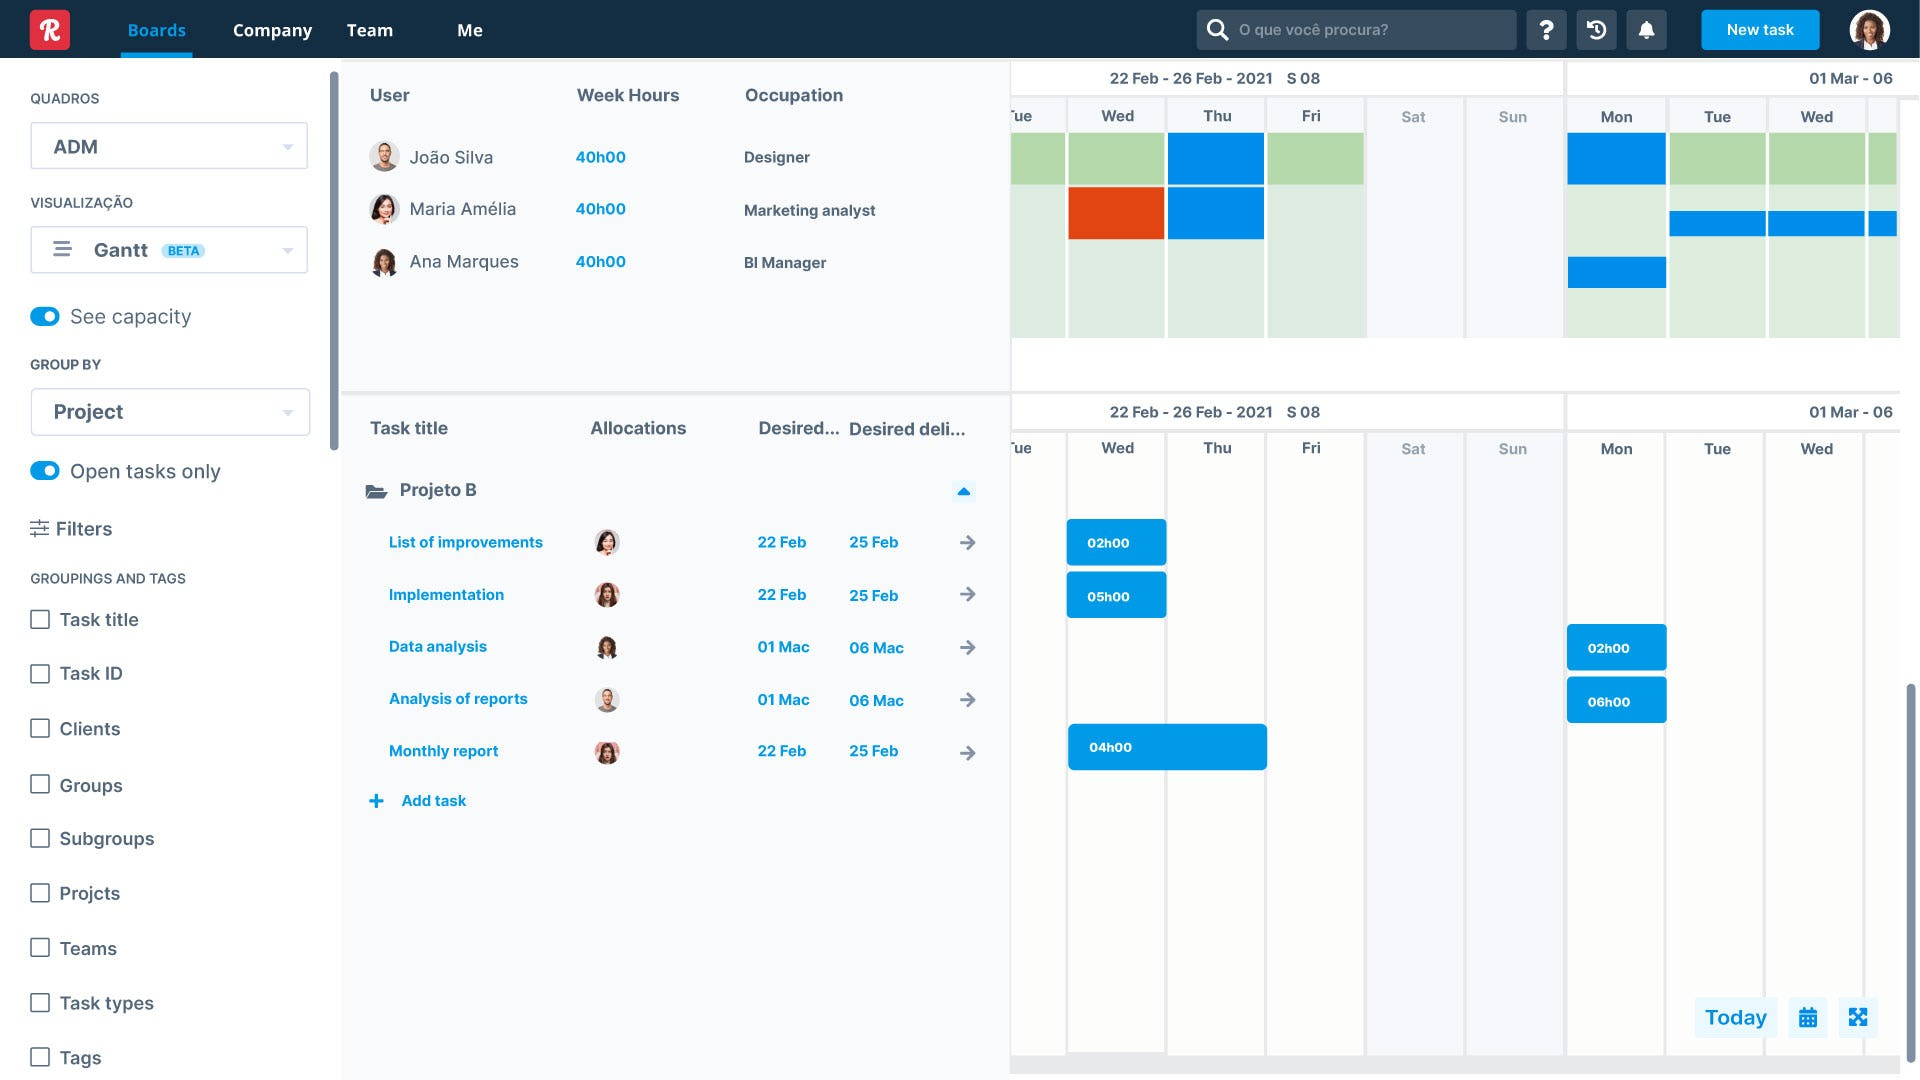 With an interactive Gantt view, you will be able to determine whether or not a person has availability for new demands in a visual and simple way.